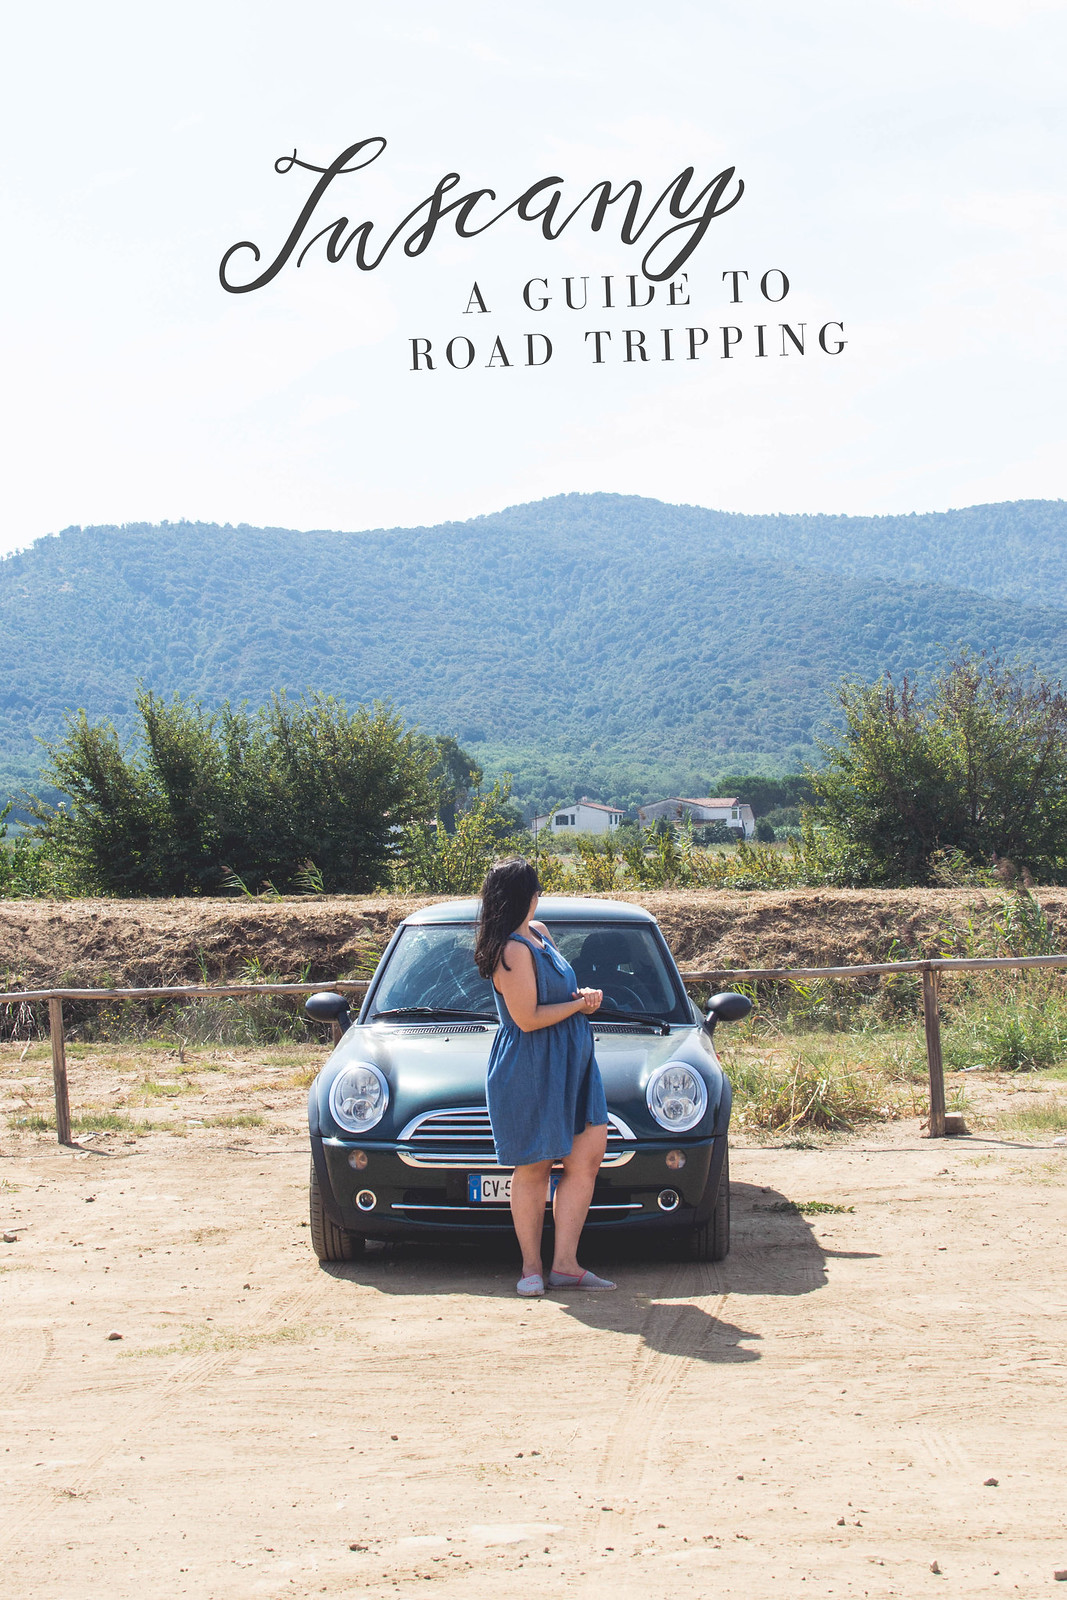 Tuscany: A Guide To Road Tripping